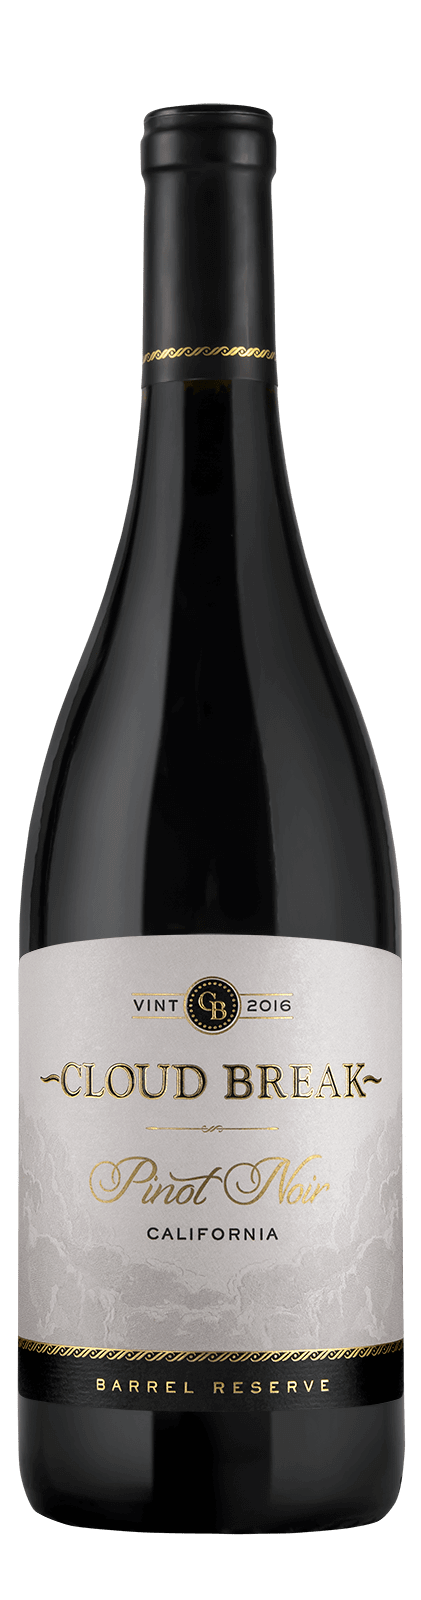 2018 Cloud Break California Pinot Noir